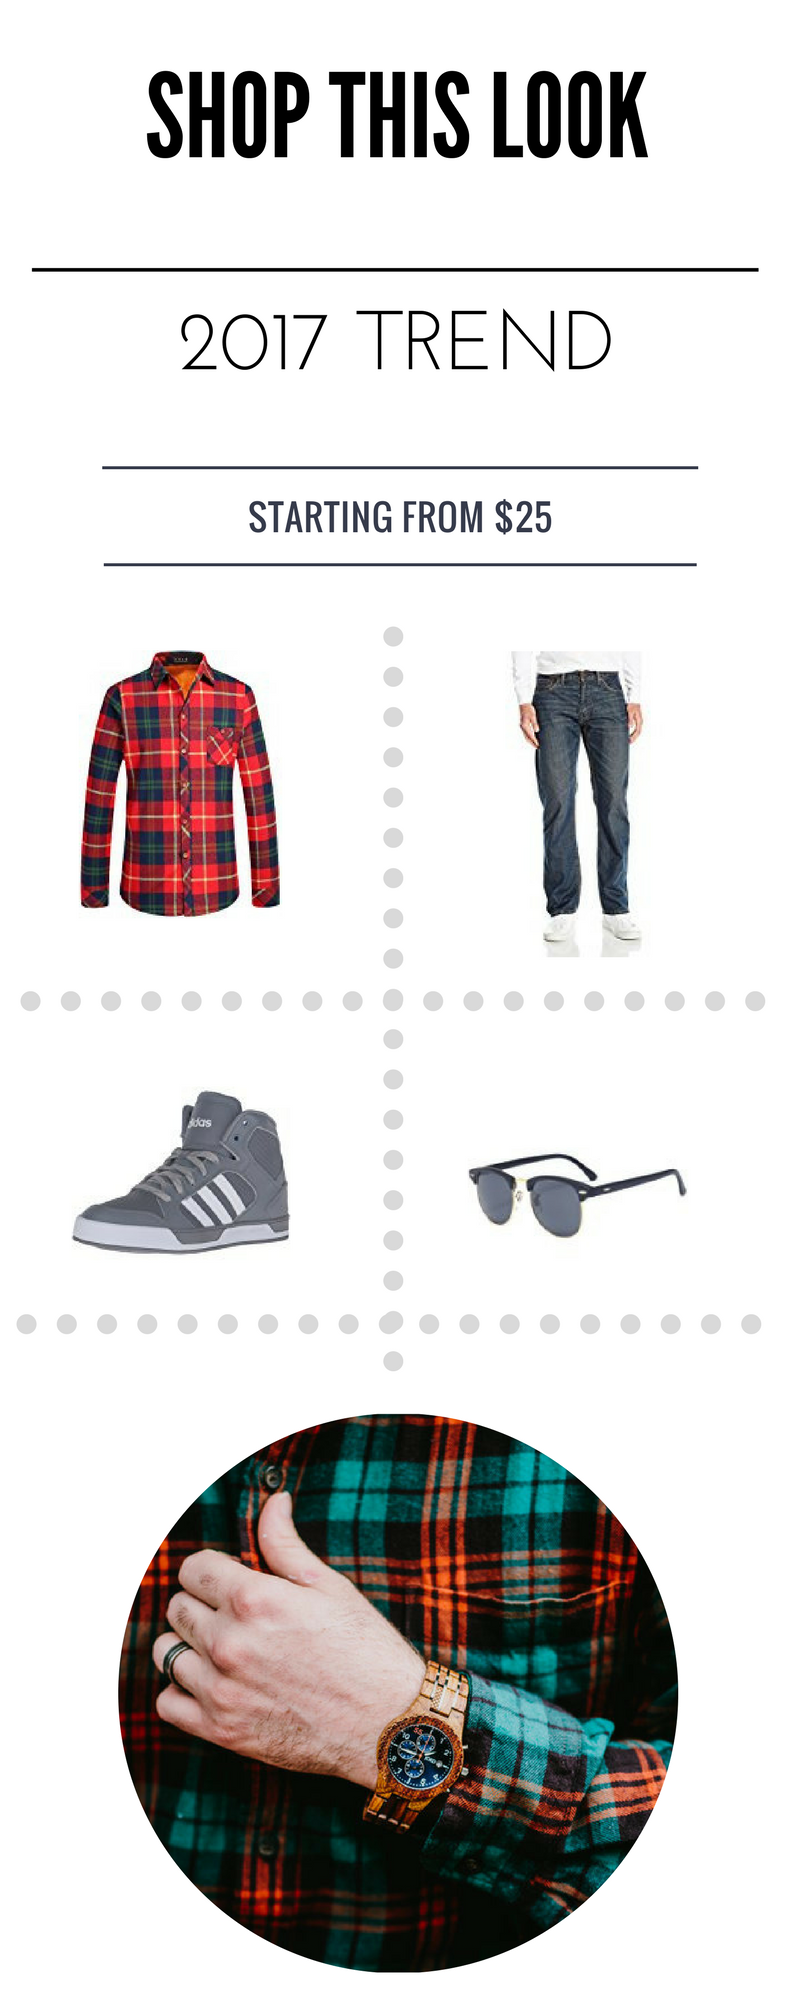 Flannel Shirt  //  Straight Fit Jean  //  Lace-Up    Shoe  //  Clear Lens Glasses  //  JORD Wooden    Wrist Watch